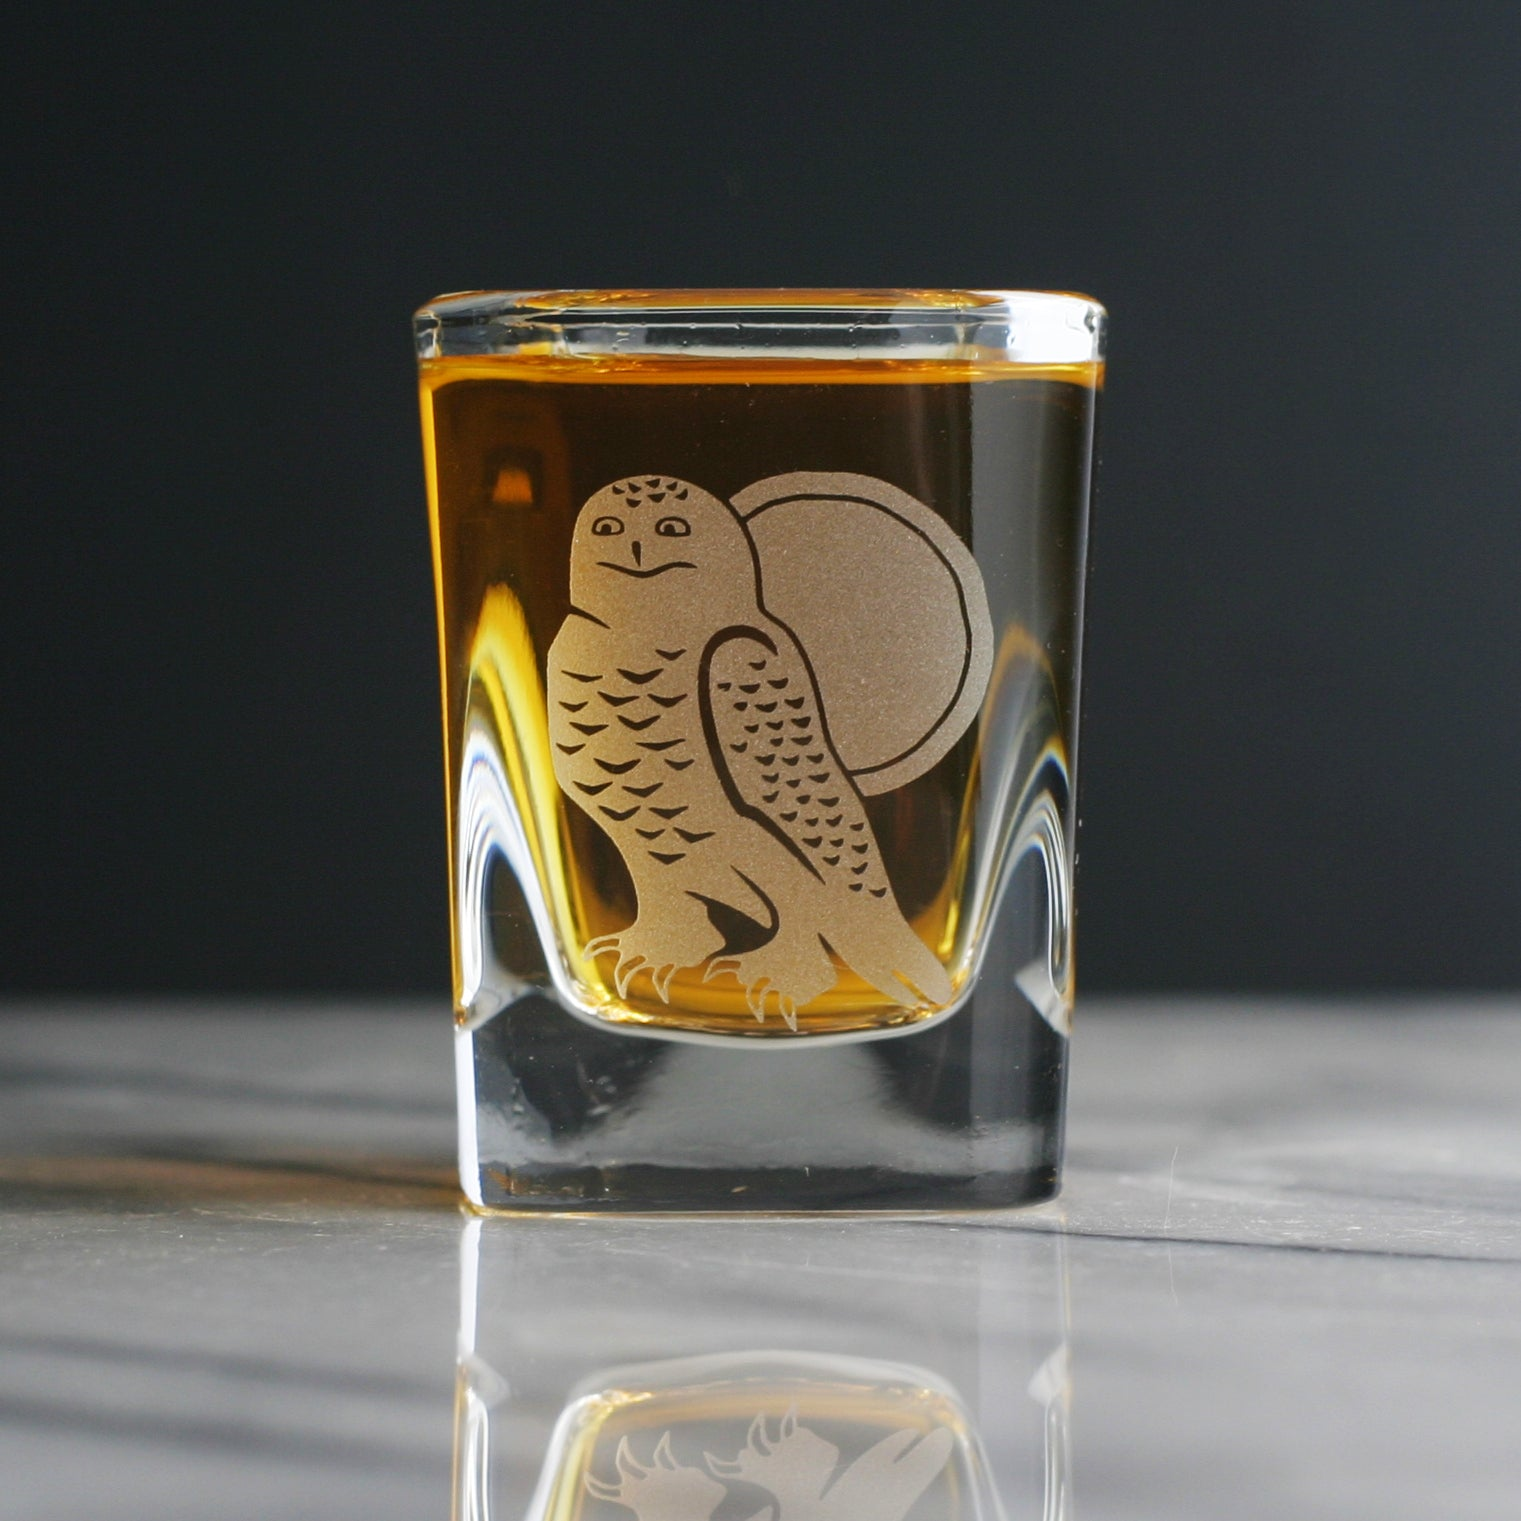 Snowy Owl shot glass by Bread and Badger